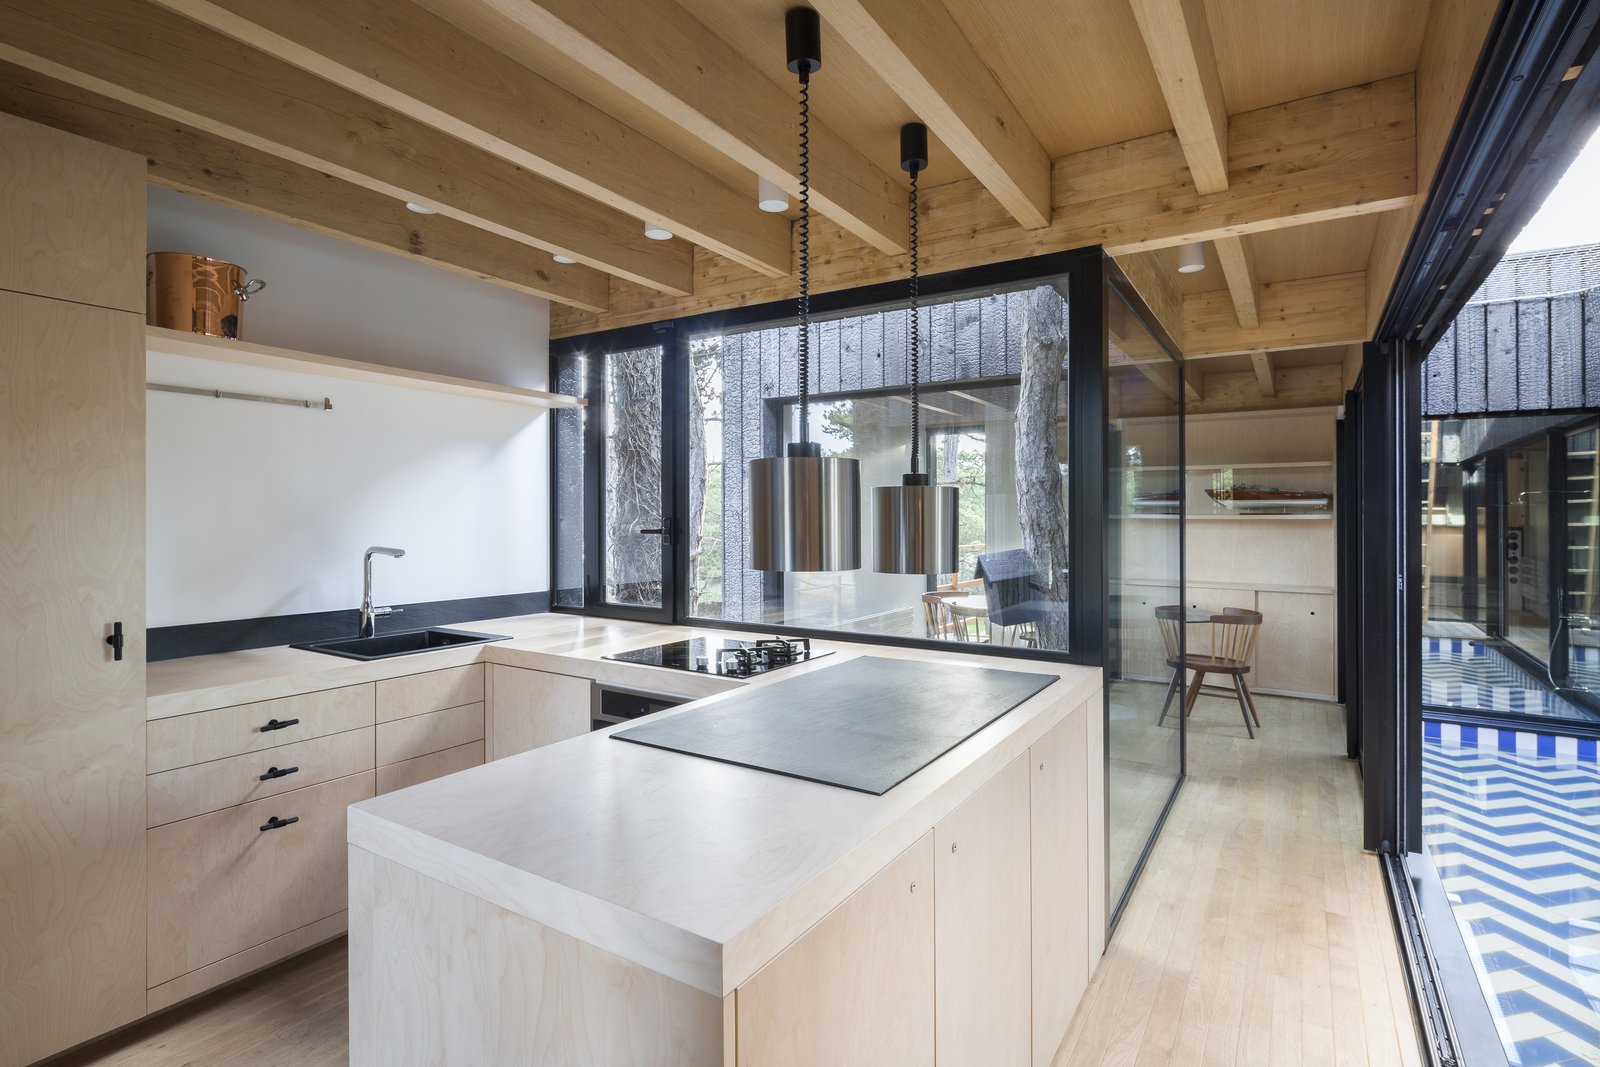 Treehouse by Atelier Victoria Migliore Kitchen